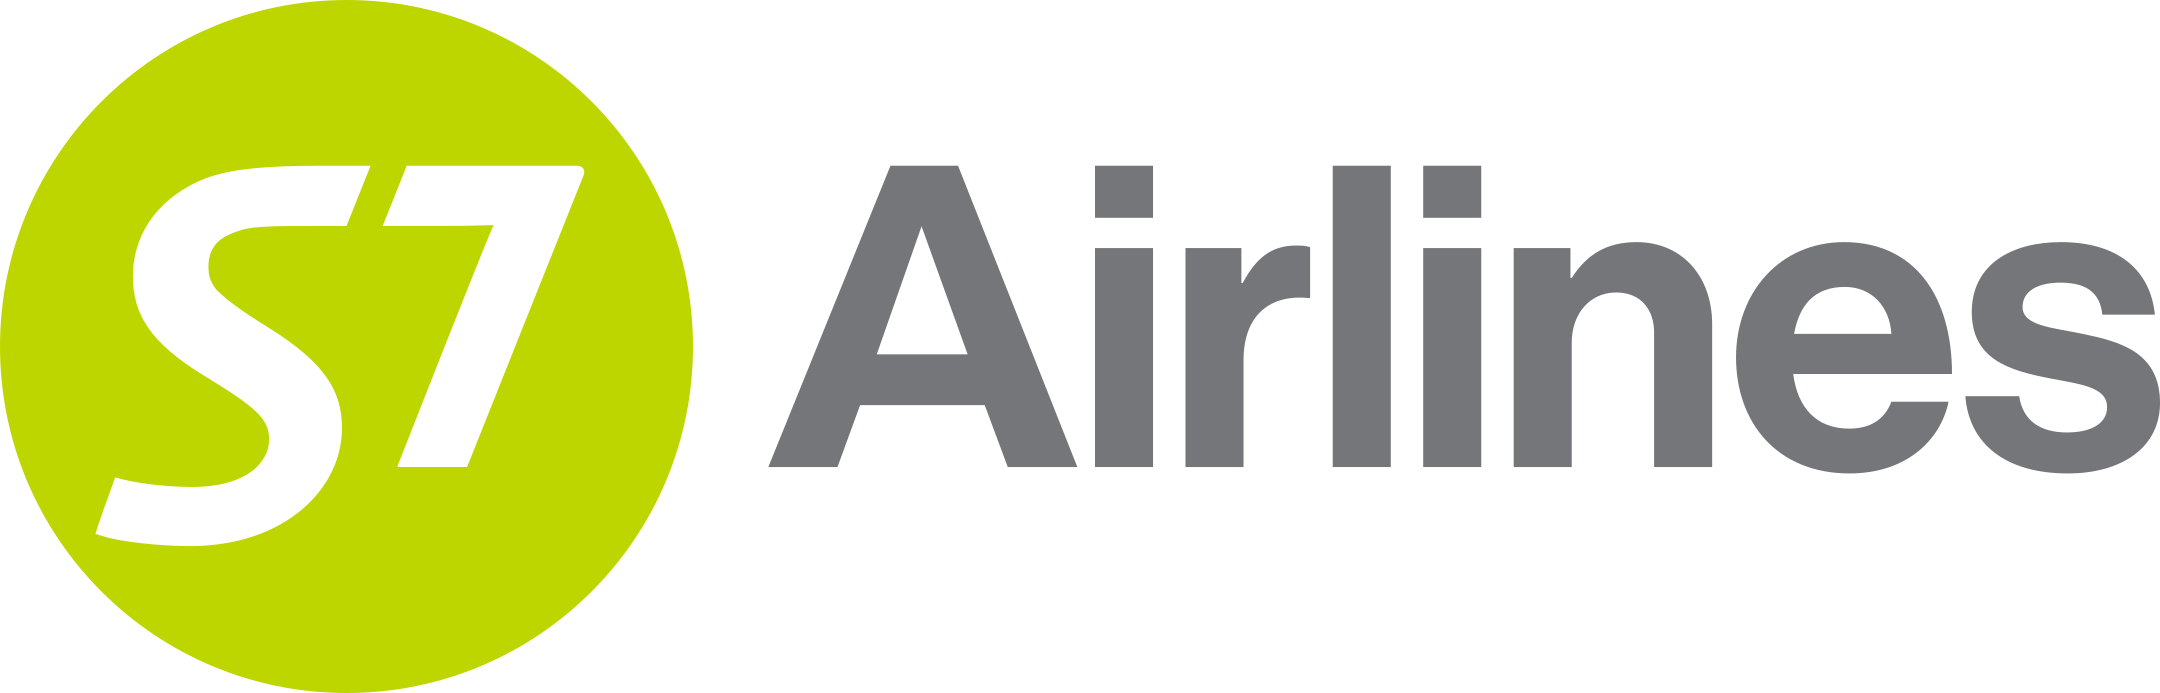 s7 airlines logo 1 - S7 Airlines Logo